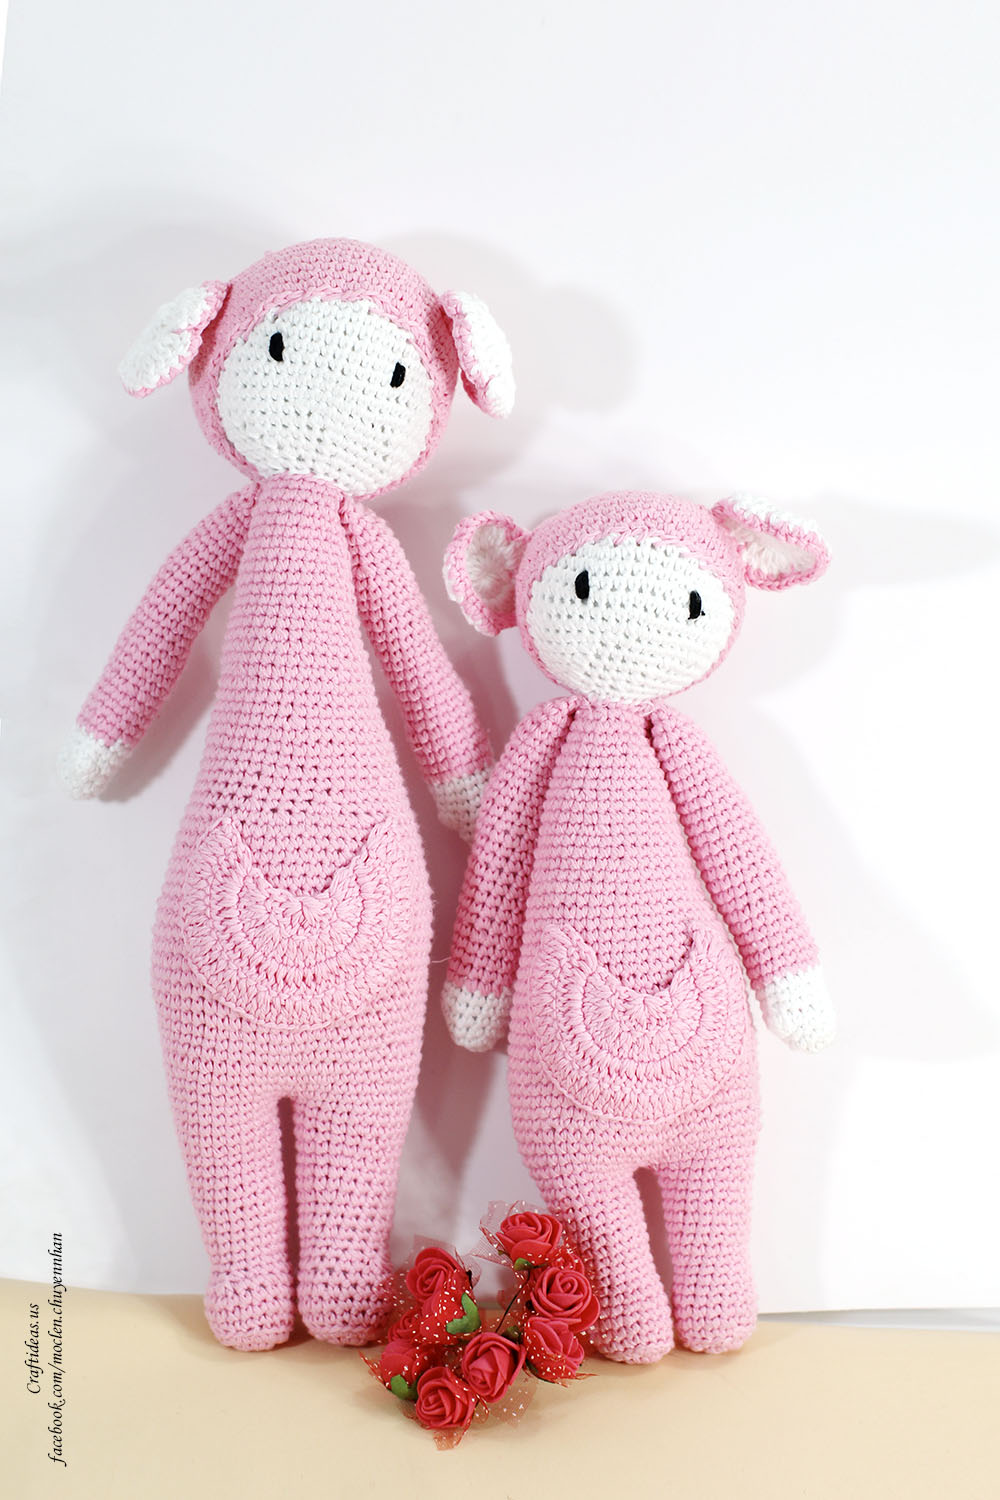 Crochet lalylala for little kids